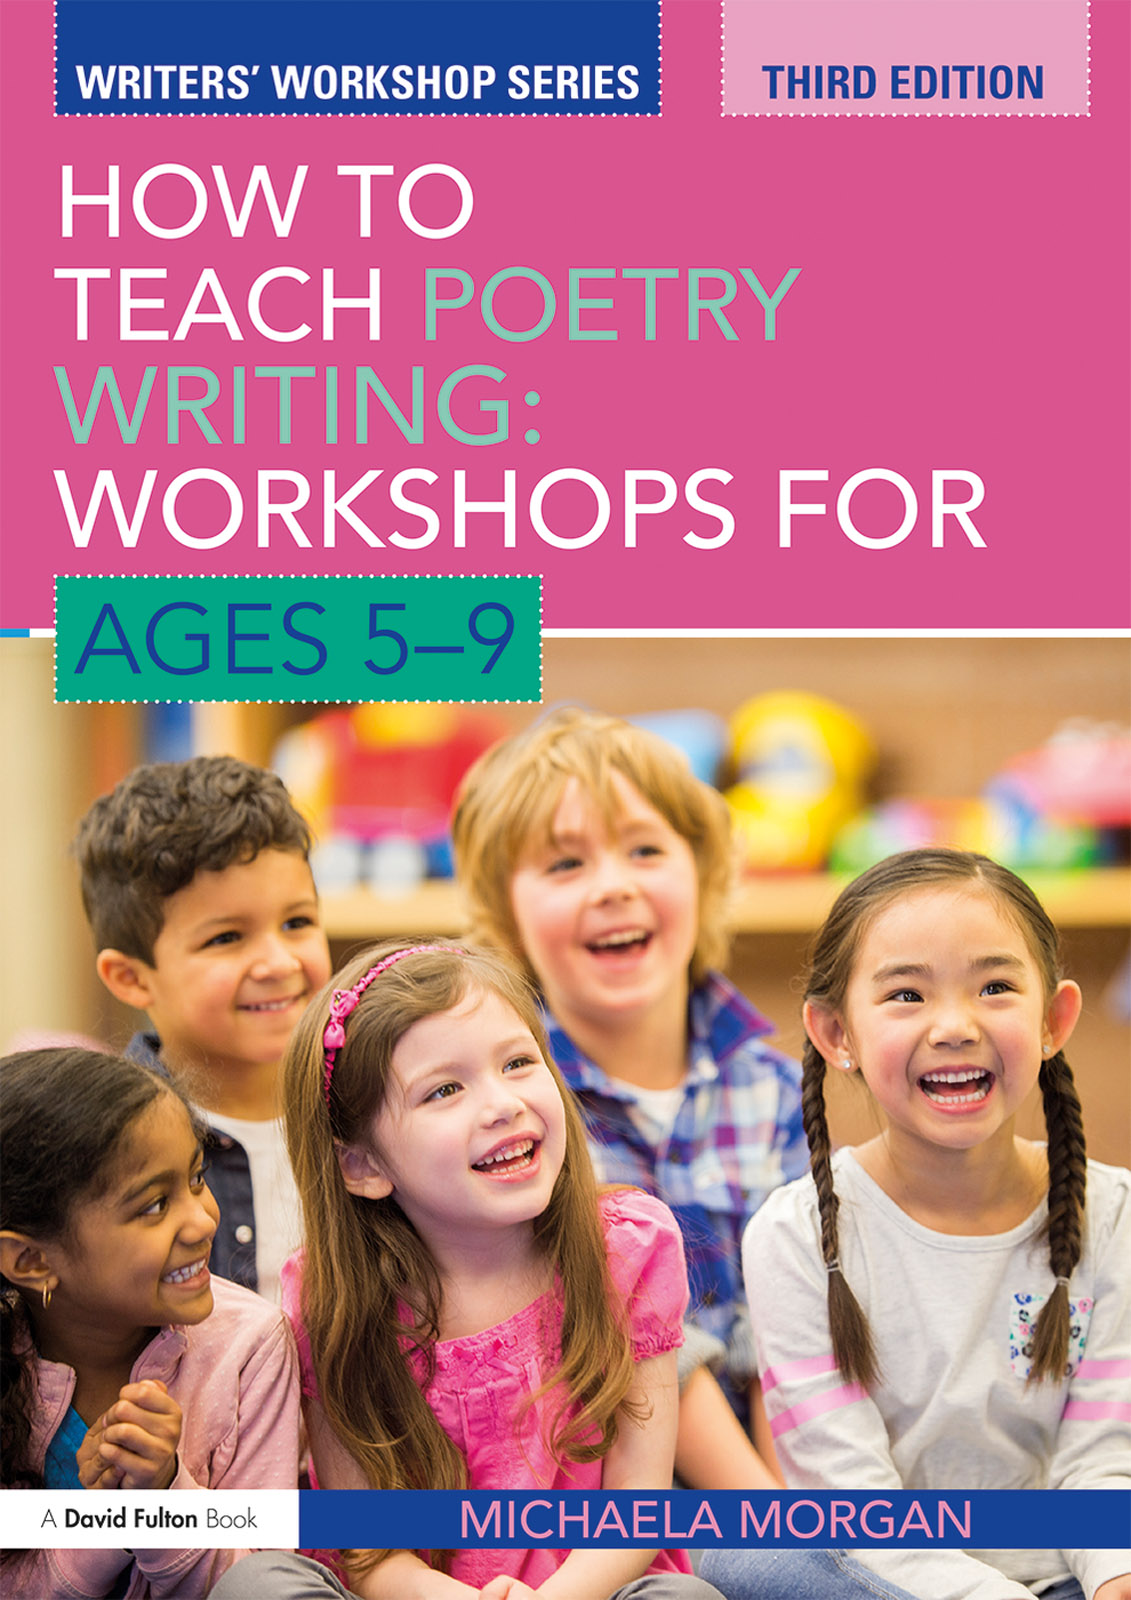 How to Teach Poetry Writing: Workshops for Ages 5-9: 3rd Edition (Paperback) book cover